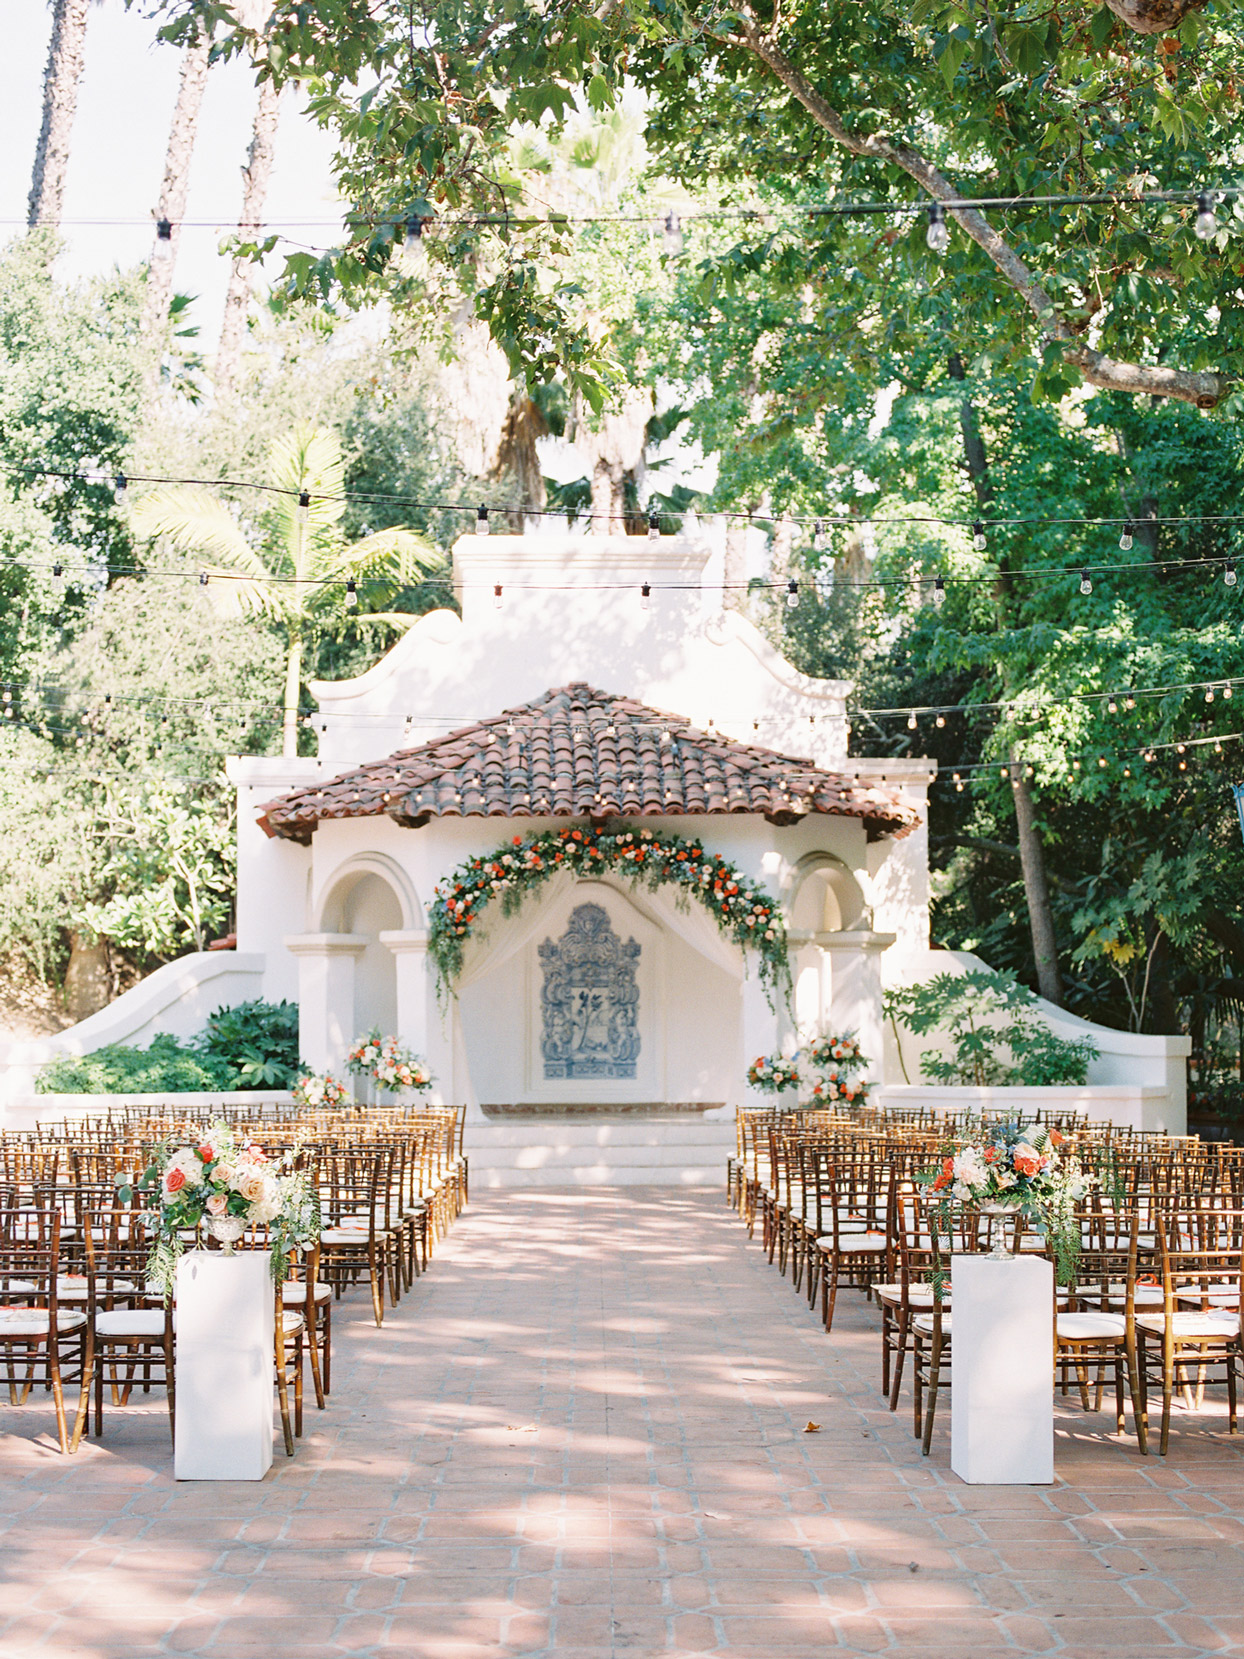 open-air theater wedding ceremony space